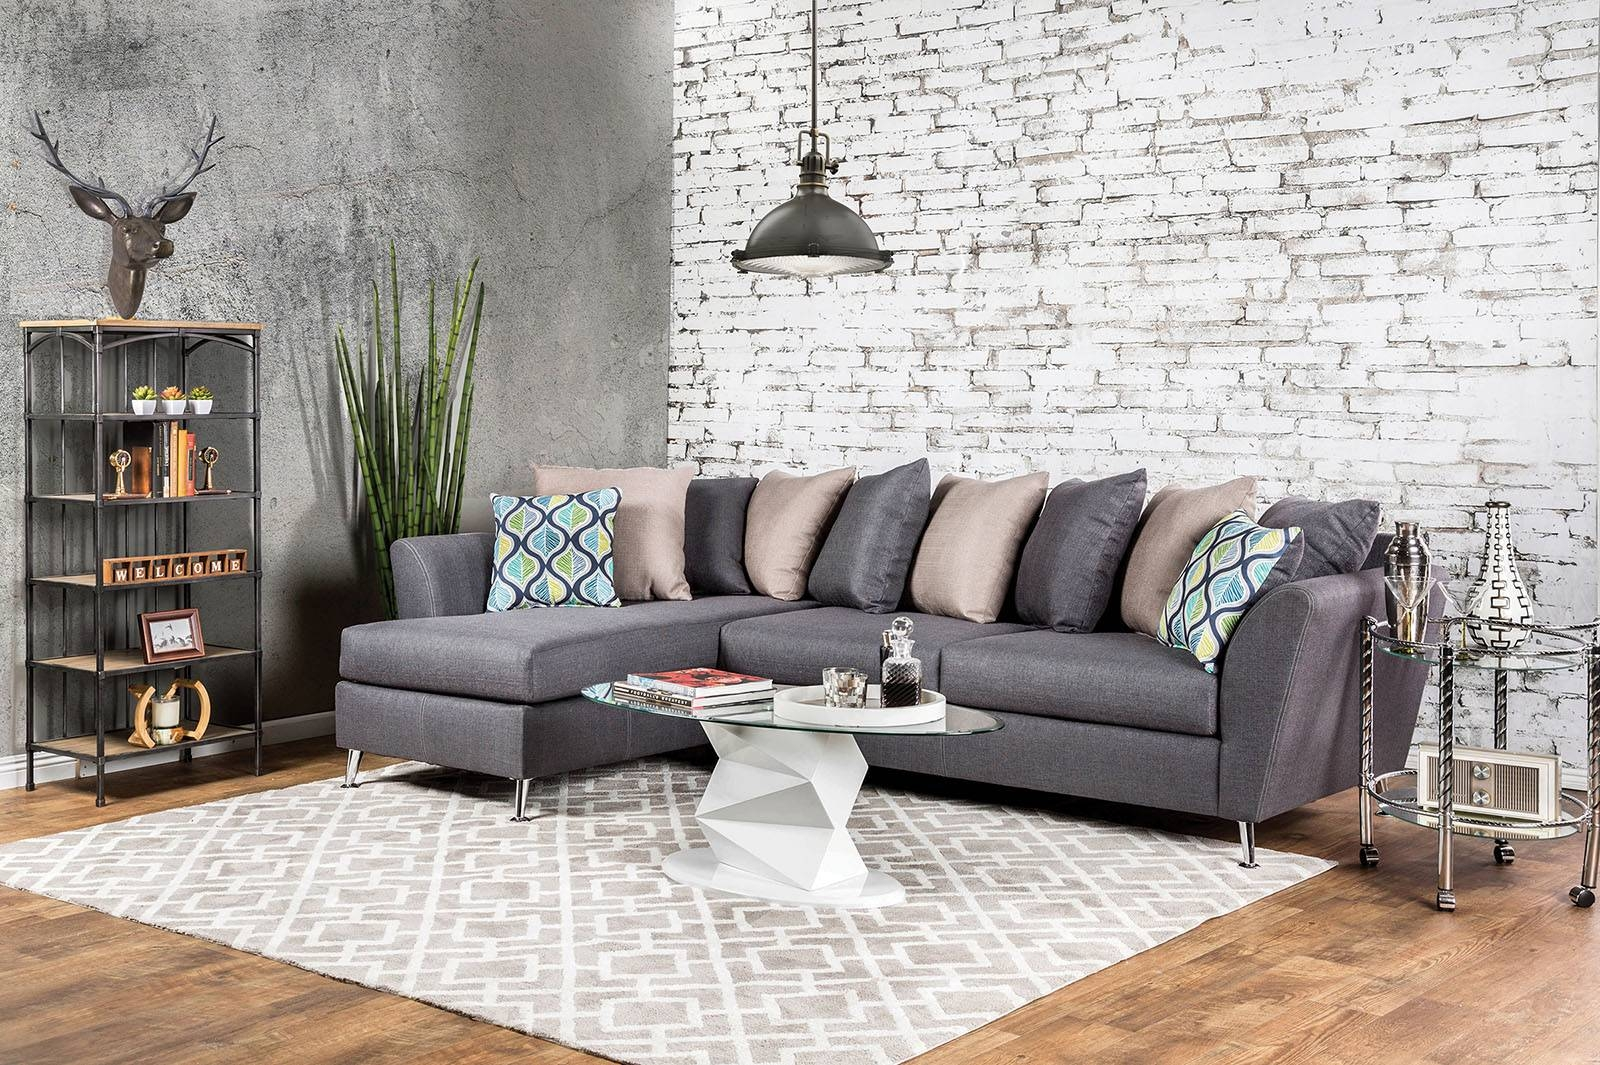 Sm6201 Gray Loose Pillow Back Multi Color Sectional Sofa Long with regard to Loose Pillow Back Sofas (Image 12 of 15)